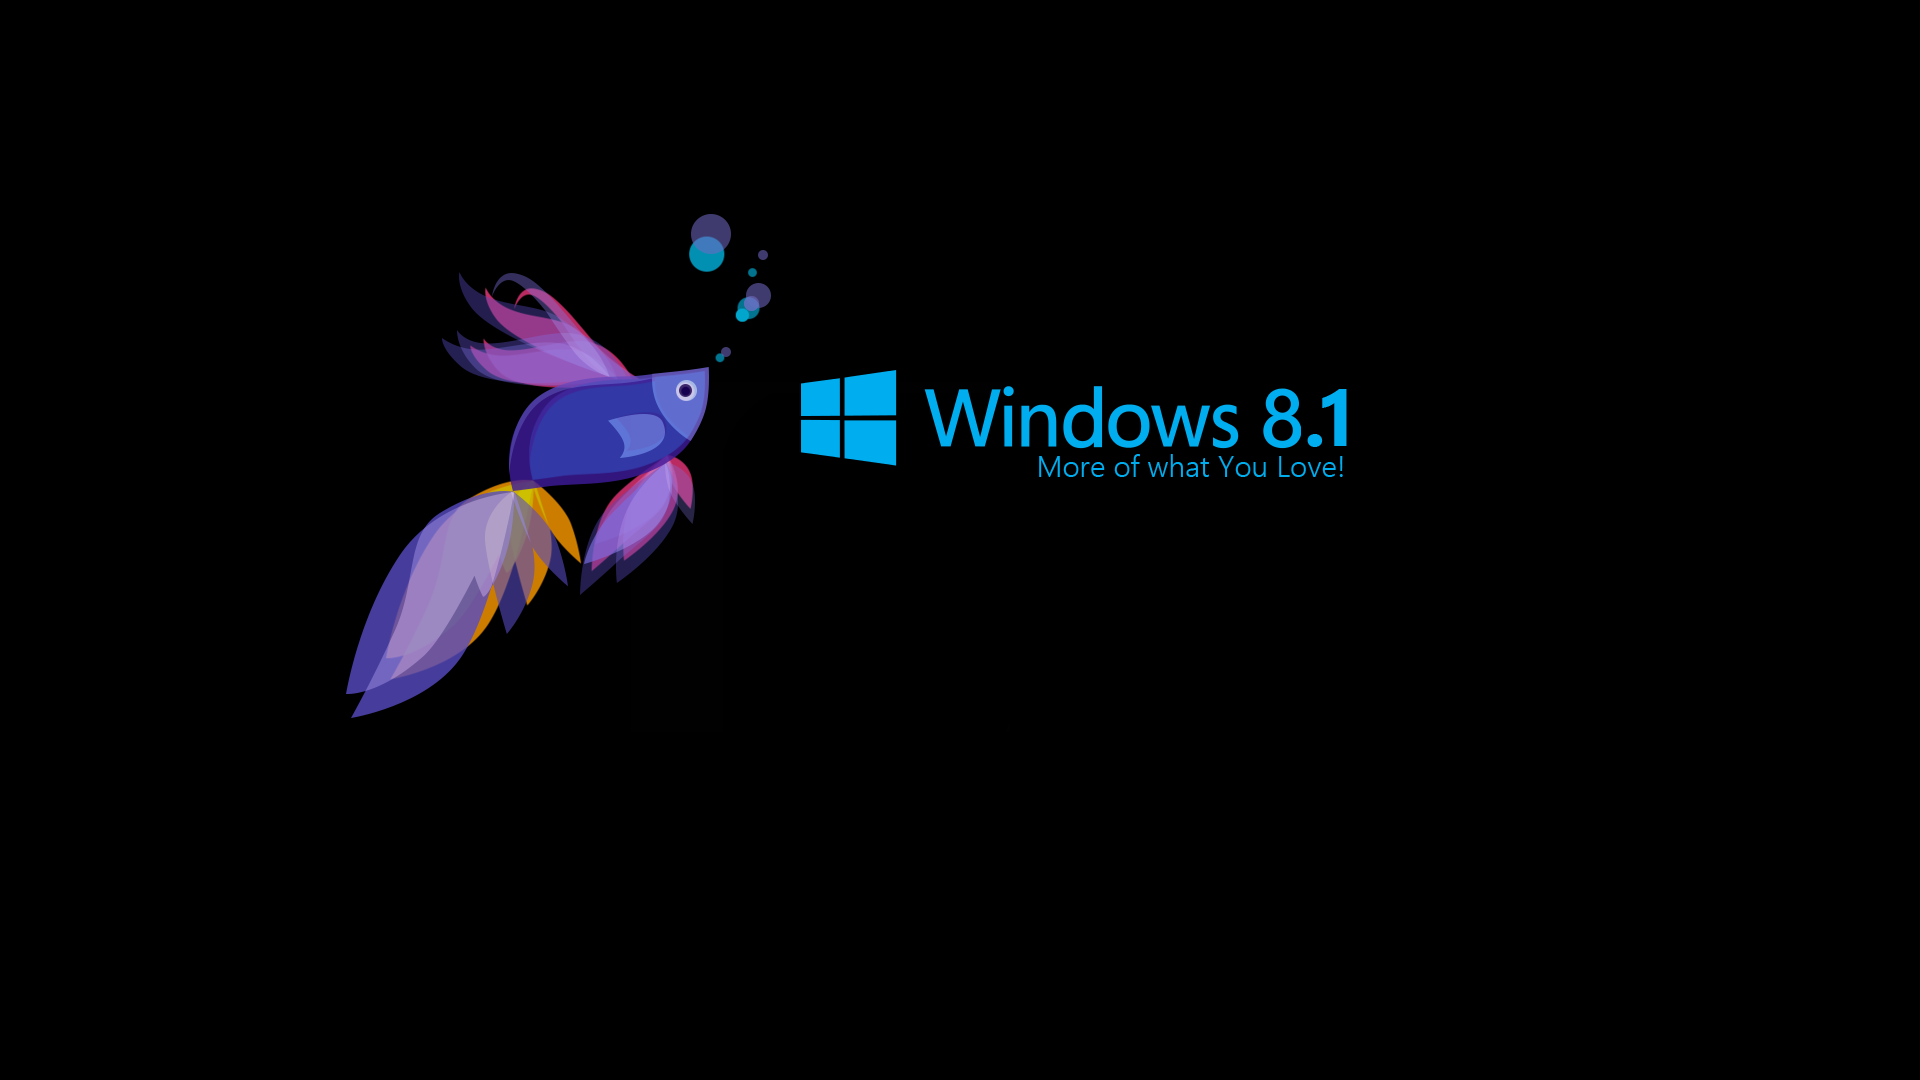 download free wallpapers hd windows 8 1 desktop widescreen